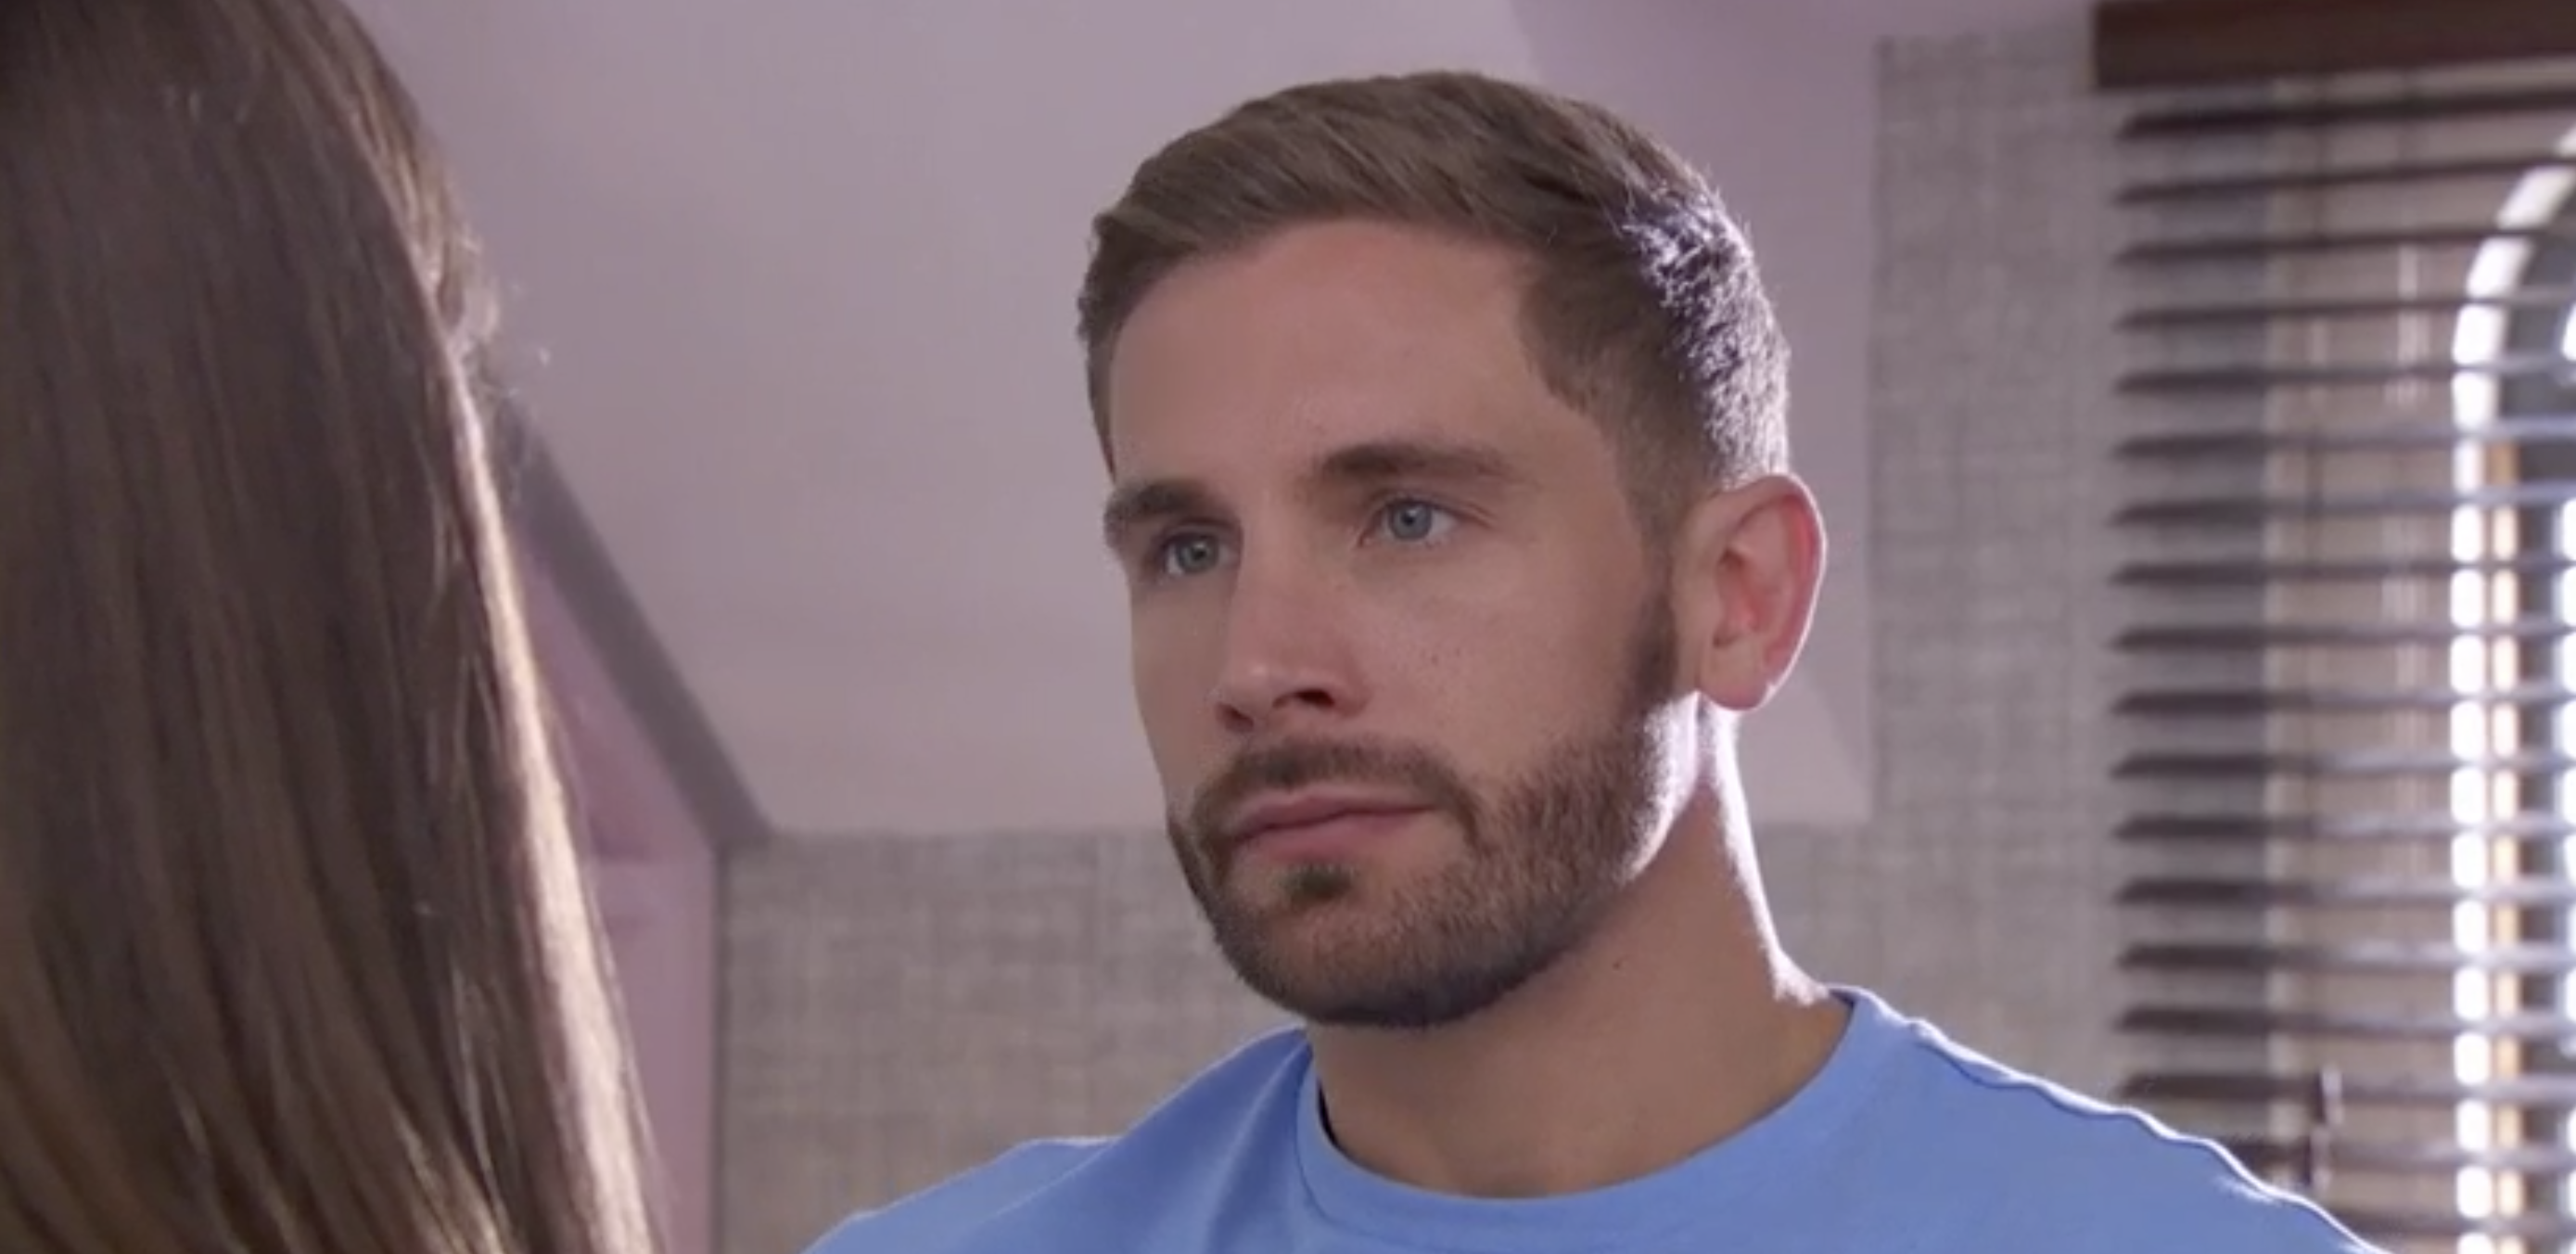 Hollyoaks' Brody Hudson makes big decision about future with Sienna Blake after having doubts